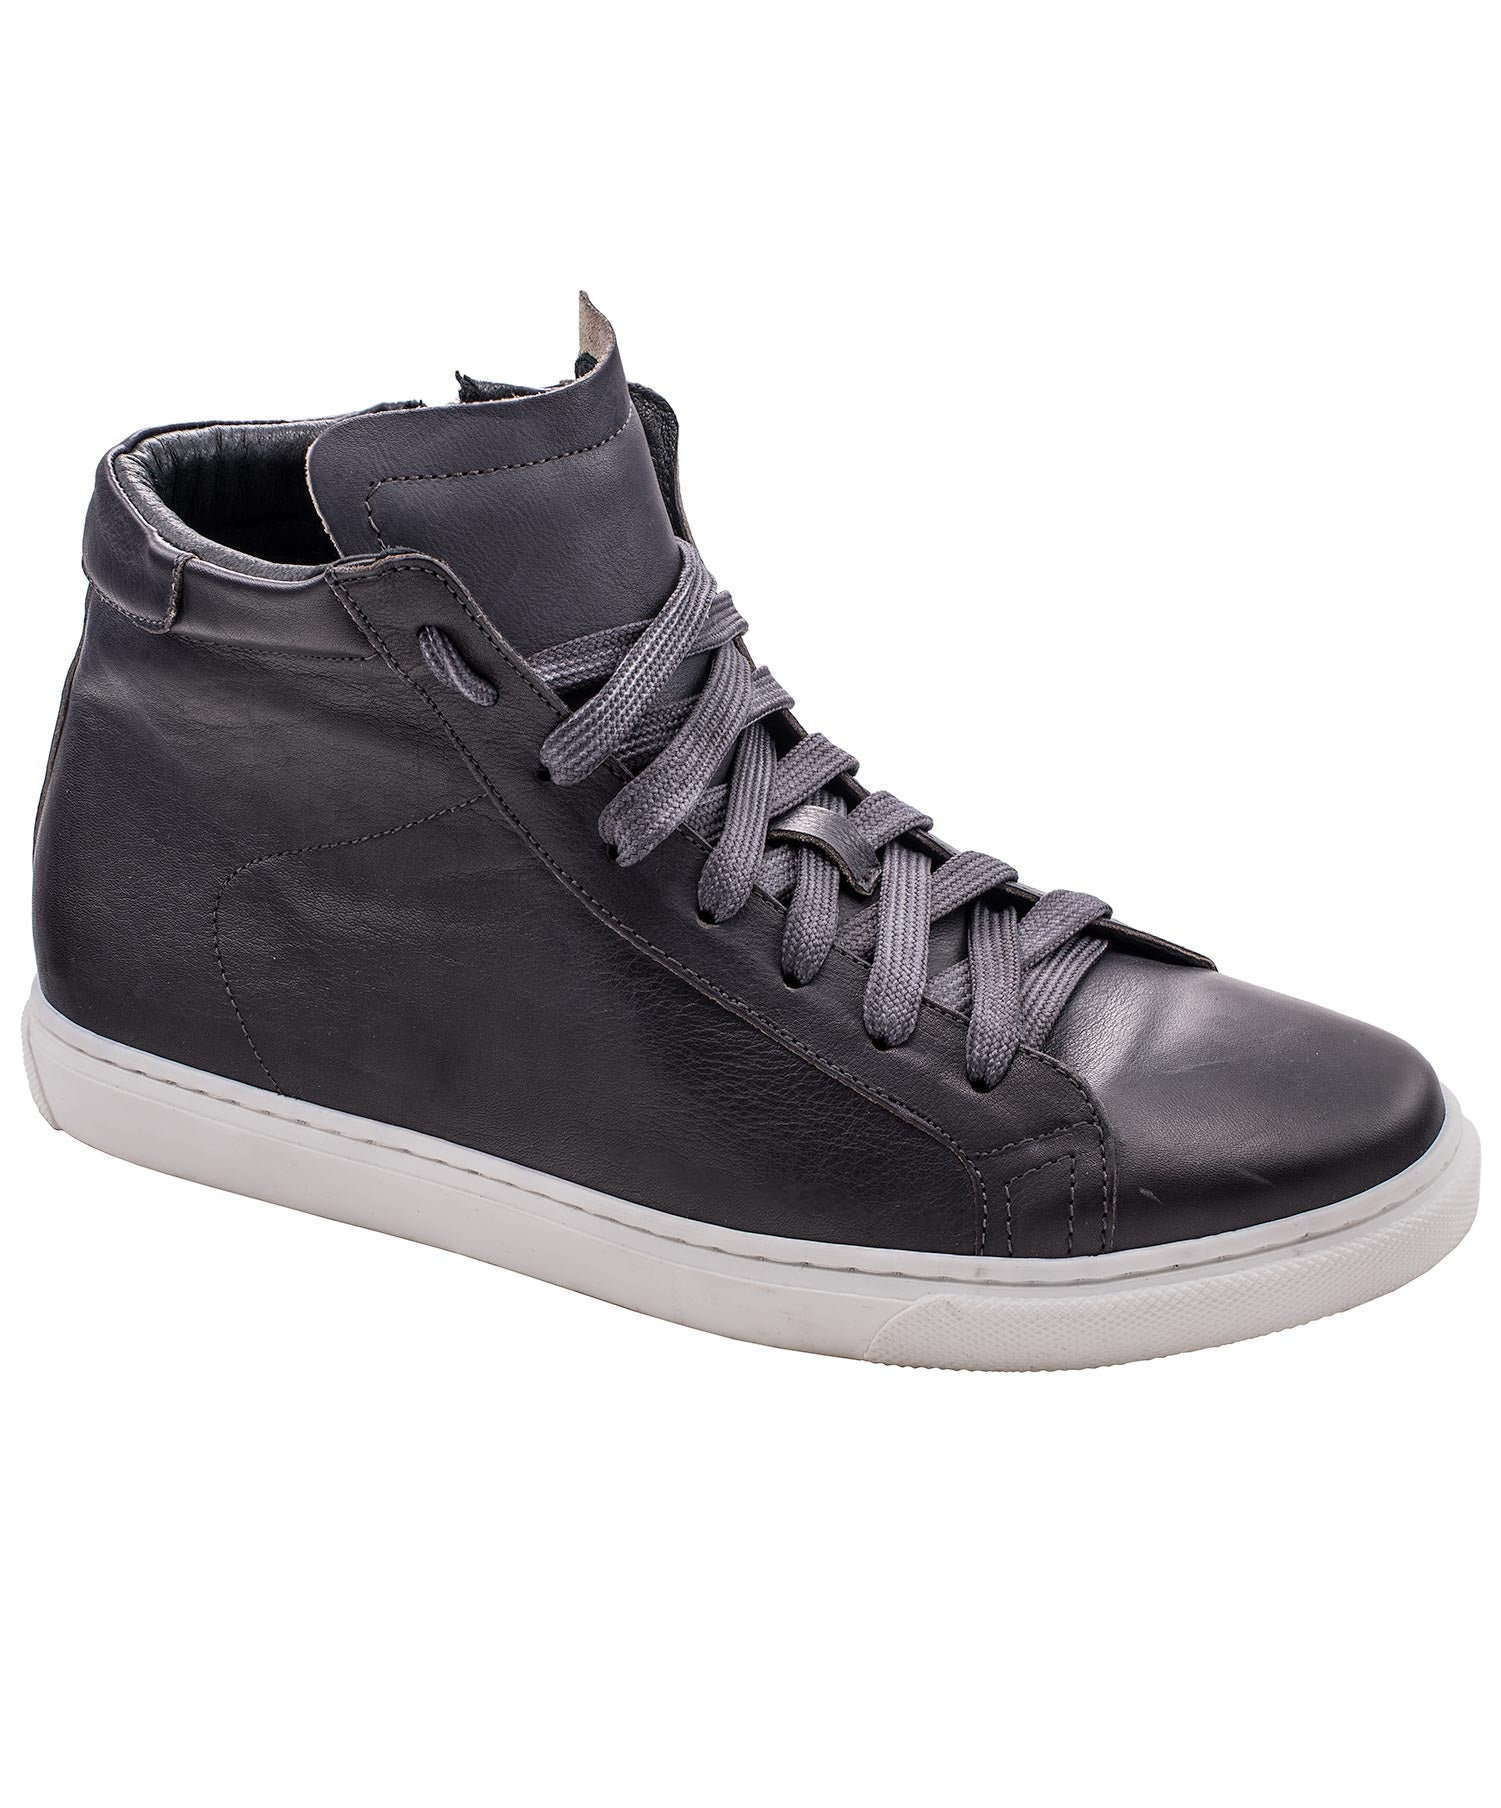 Vito Anthracite Leather High Top Shoes